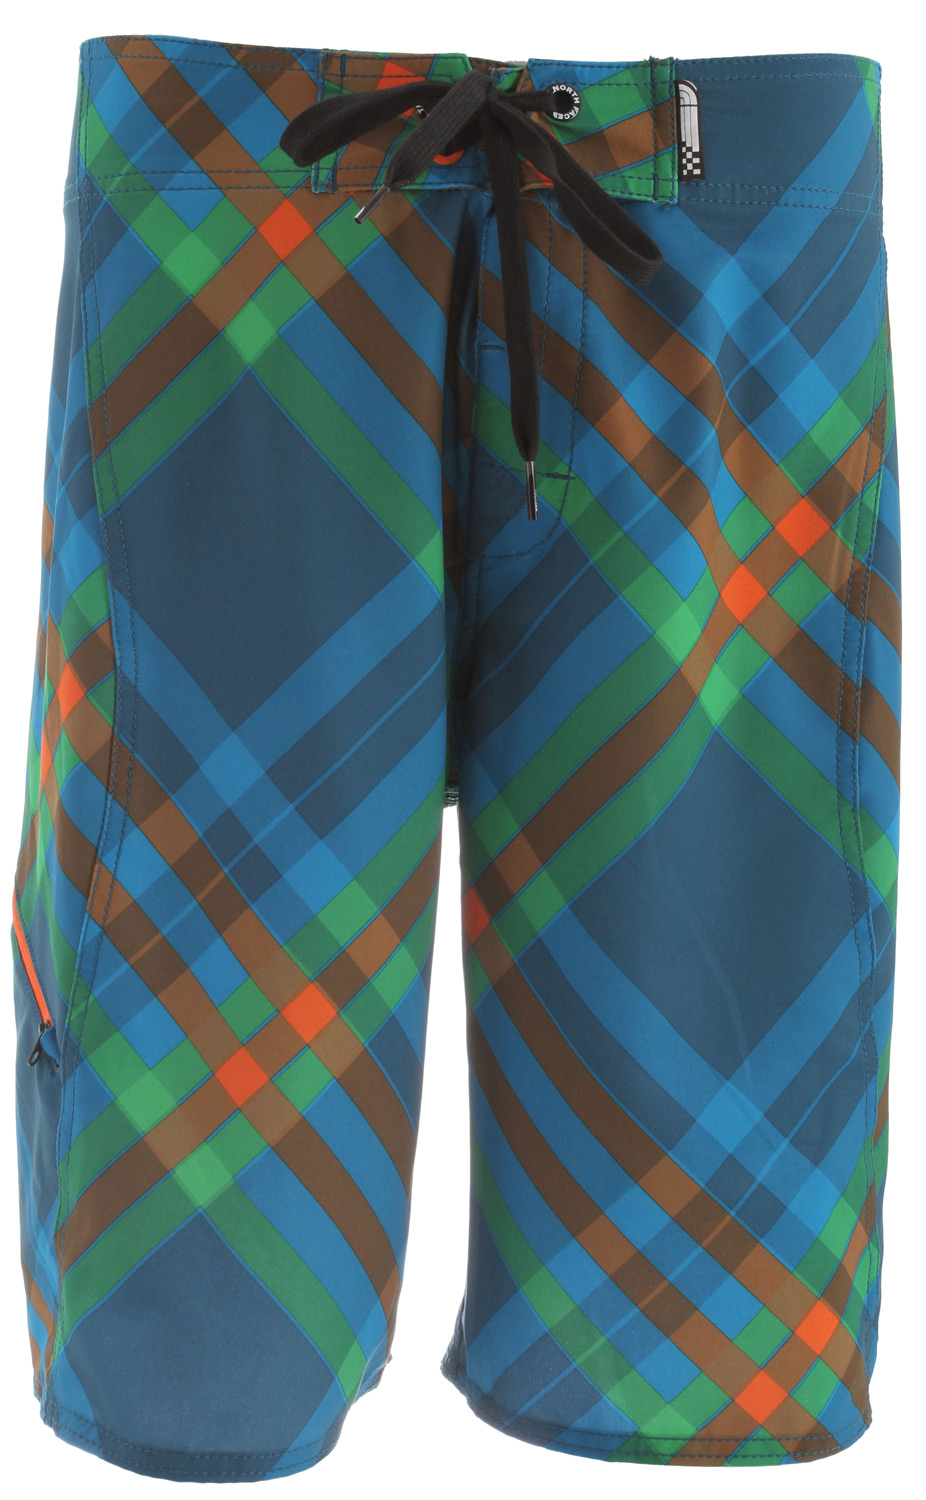 Surf A Superstretch boardshort with a zip cargo stowpocket designed for serious tube time.  Fabric: 135 g/m2   53% recycled polyester, 37% polyester, 10% elastane plaid print with DWR   Ultraviolet protection factor (UPF  50   Center front drawcord closure with stretch fly gusset   Anti-chlorine 5 ppm   Anti-UV   QuickDry   Zip cargo stowpocket   Double needle reinforcement stitching on seams - $44.95